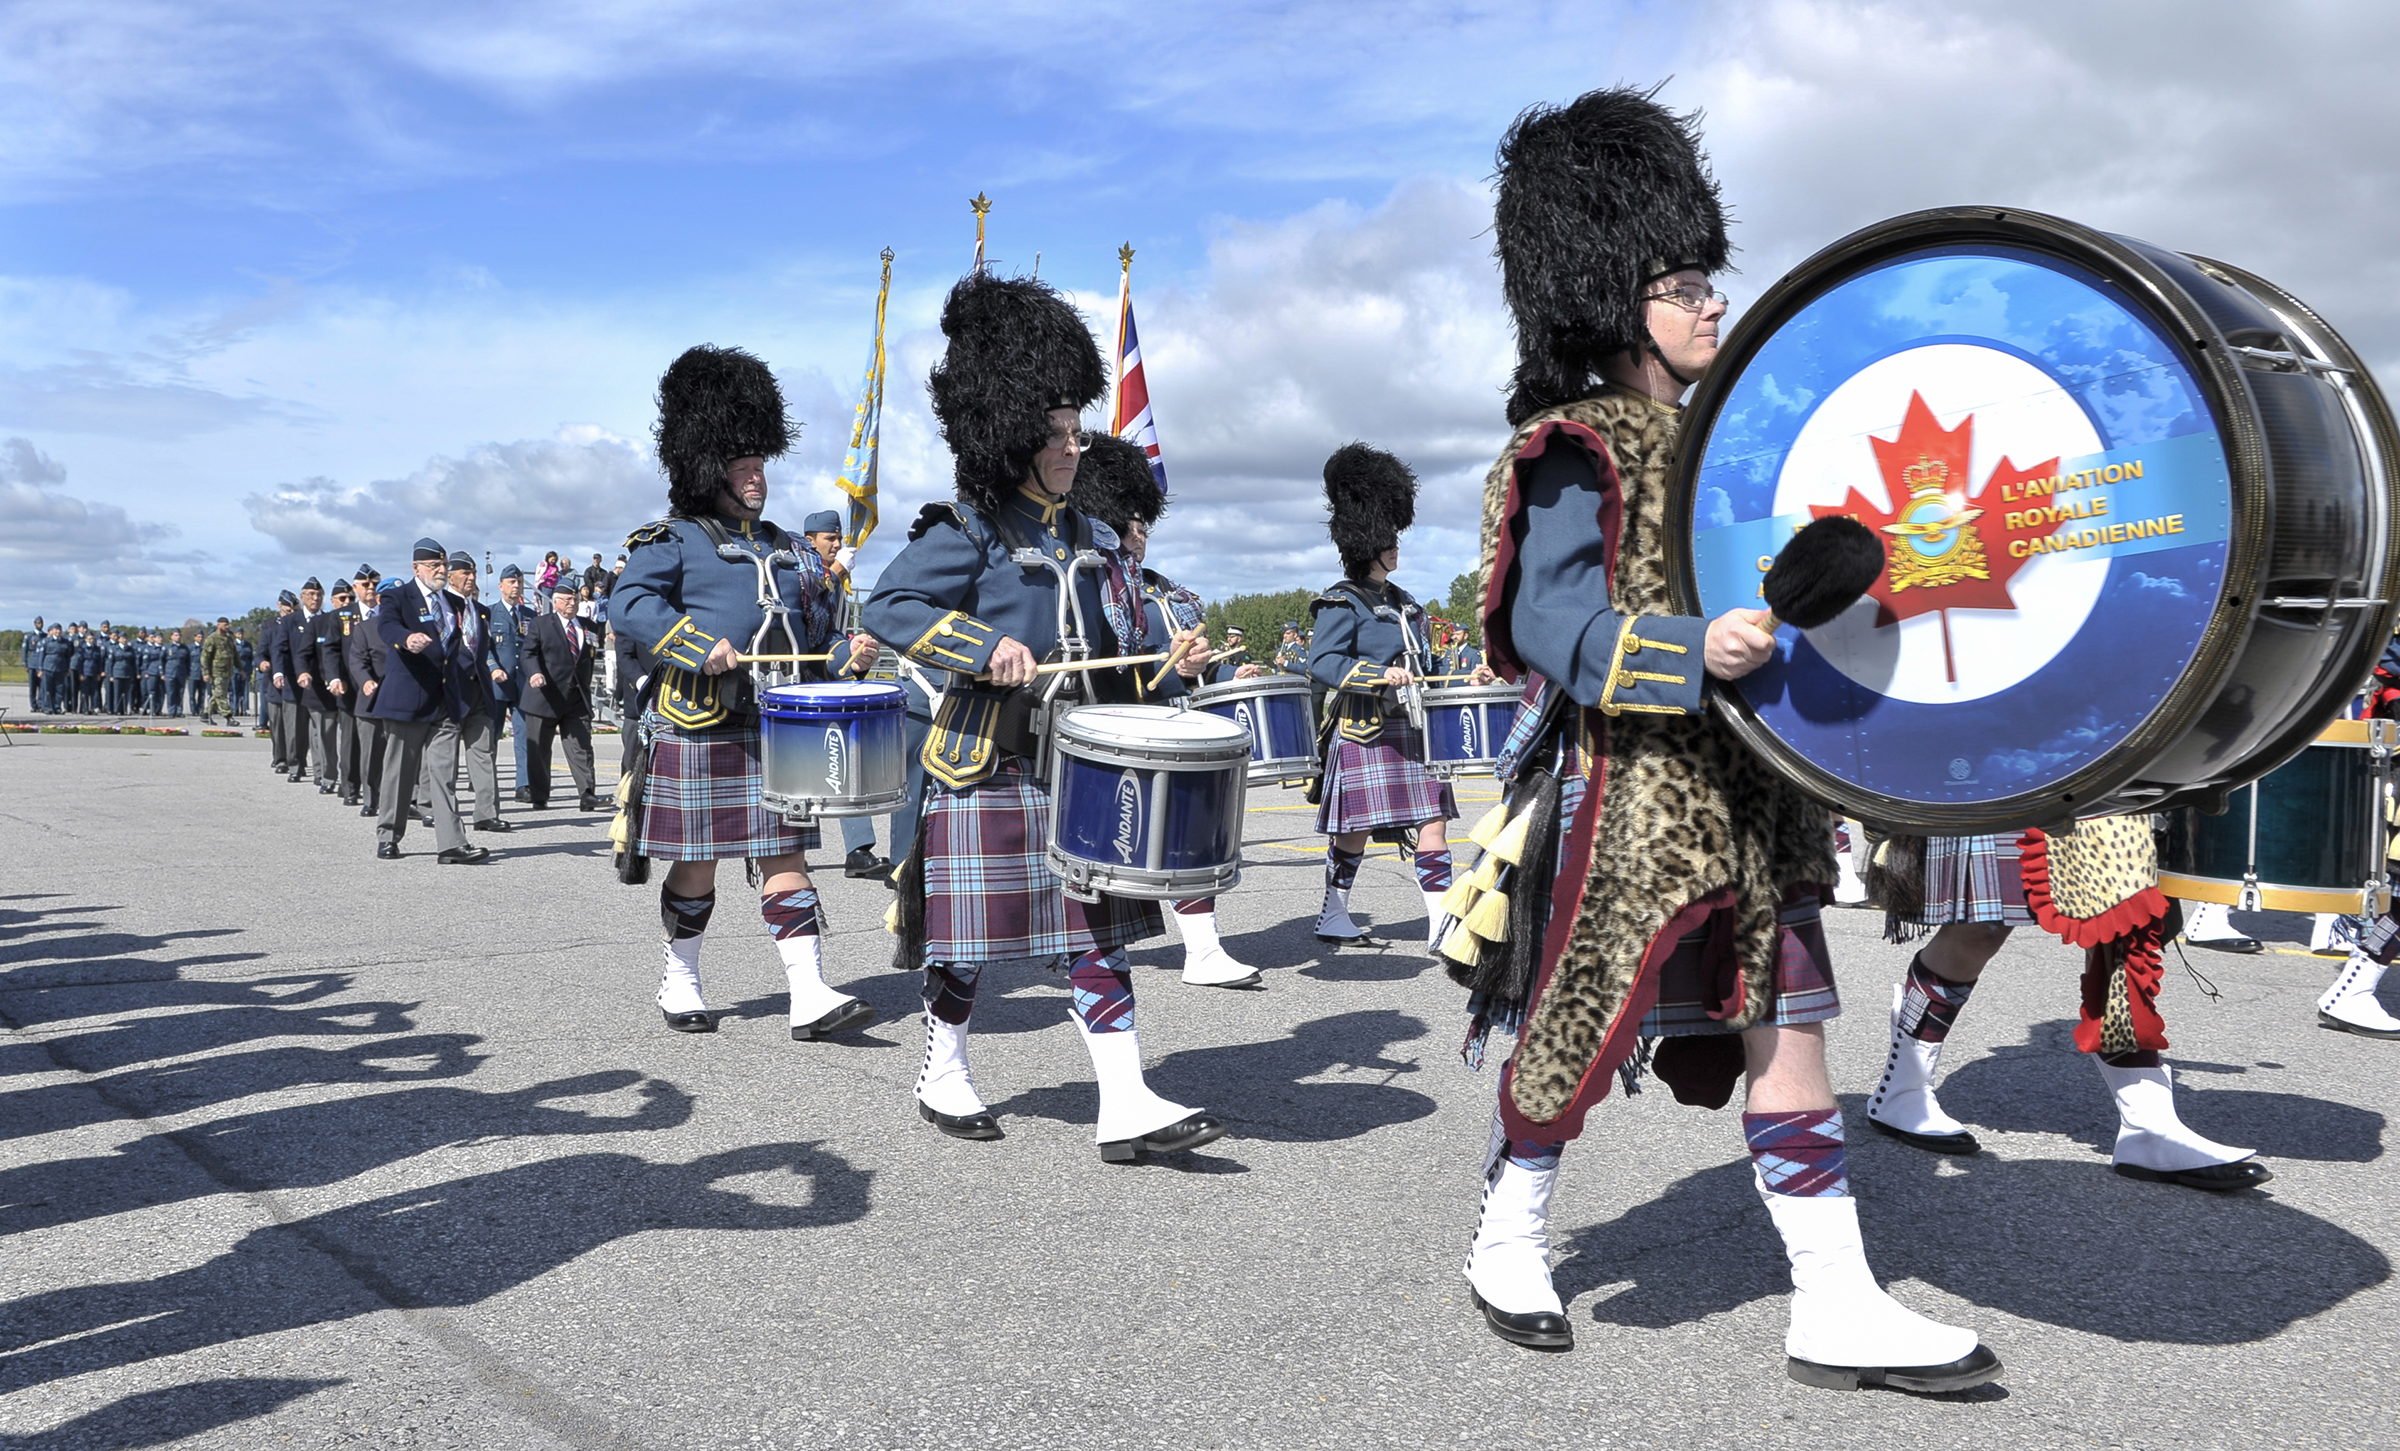 The Royal Canadian Air Force Pipes and Drums Band leads the veterans' contingent off the parade square during the national Battle of Britain parade held September 15, 2019, at the Canada Aviation and Space Museum in Ottawa, Ontario. PHOTO: Aviator Jacob Hanlon, FA01-2019-0008-024